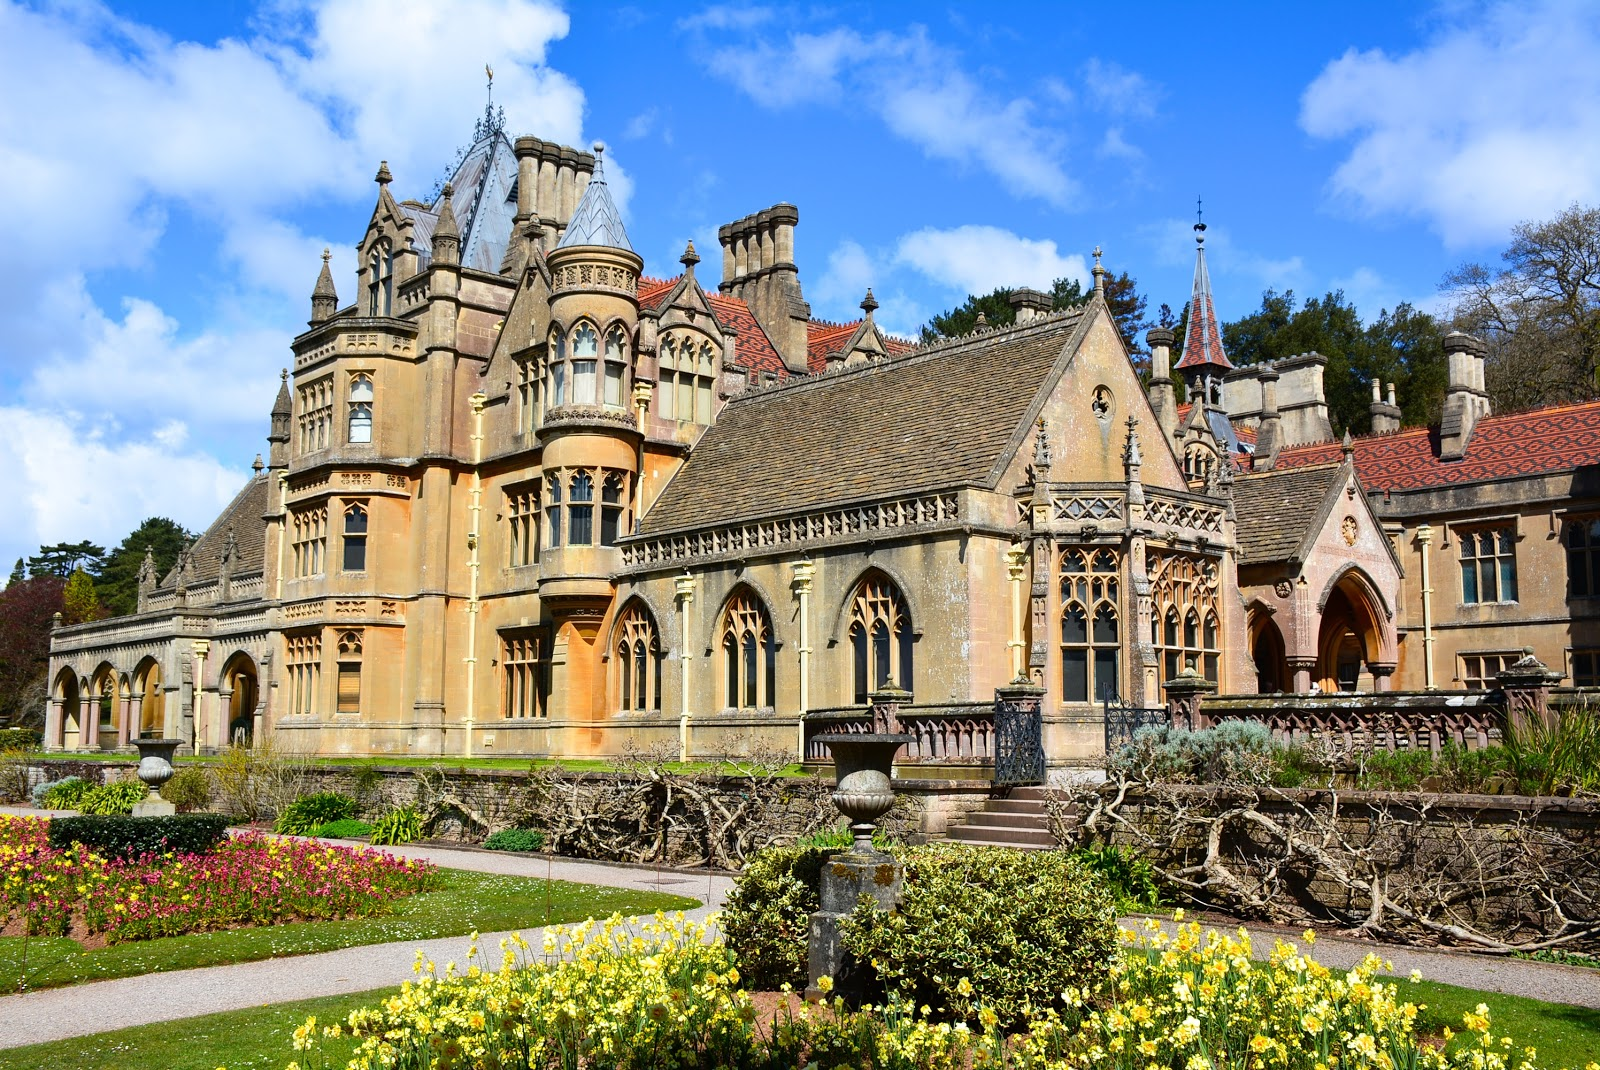 Tyntesfield House in North Somerset